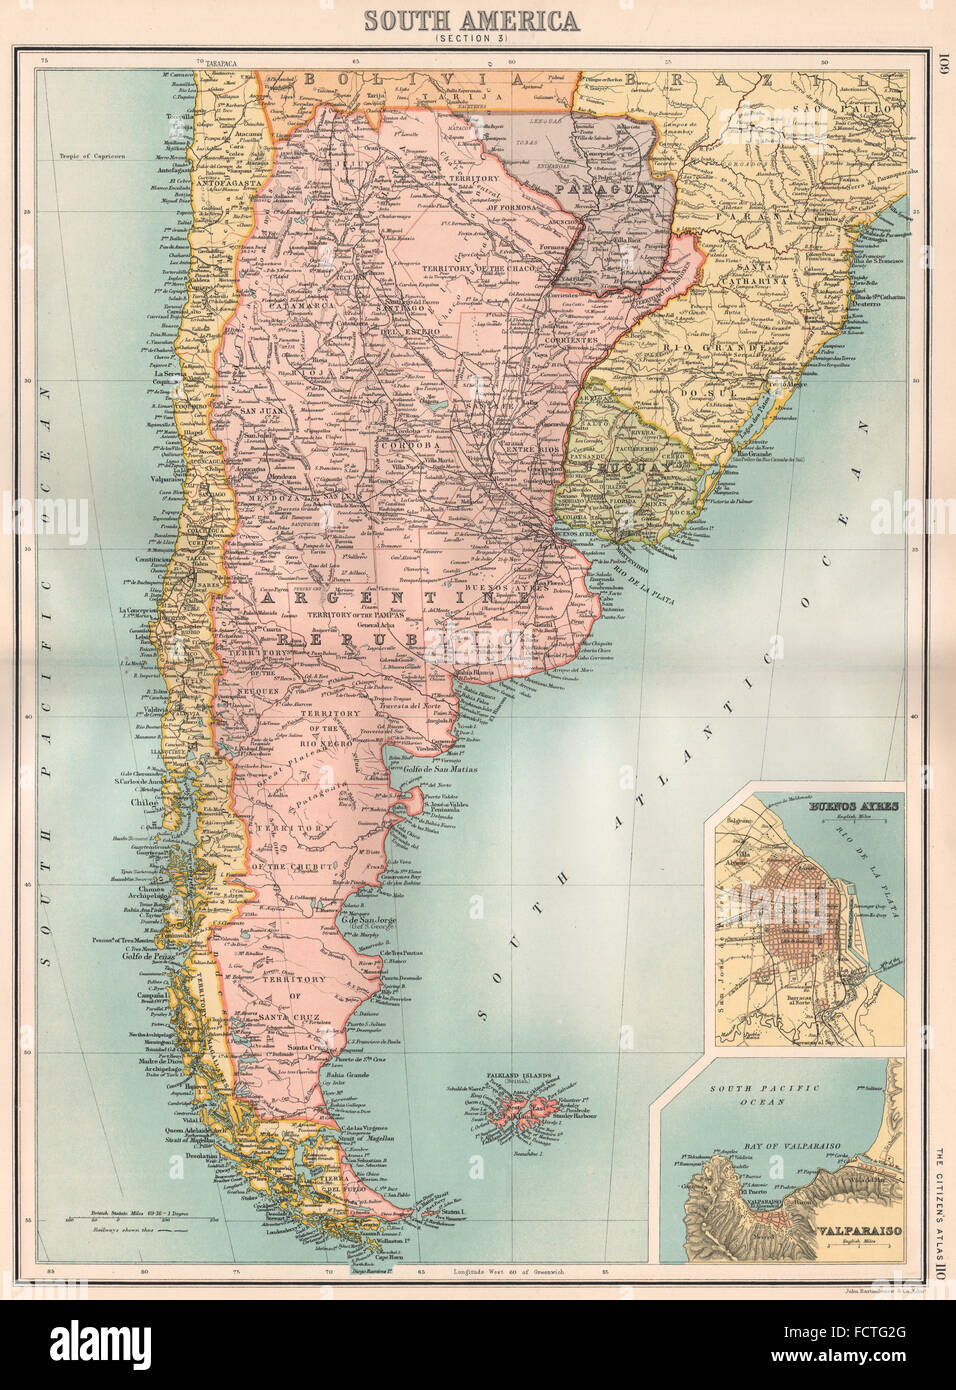 Where Is Buenos Aires On A World Map.Buenos Aires Map Stock Photos Buenos Aires Map Stock Images Alamy